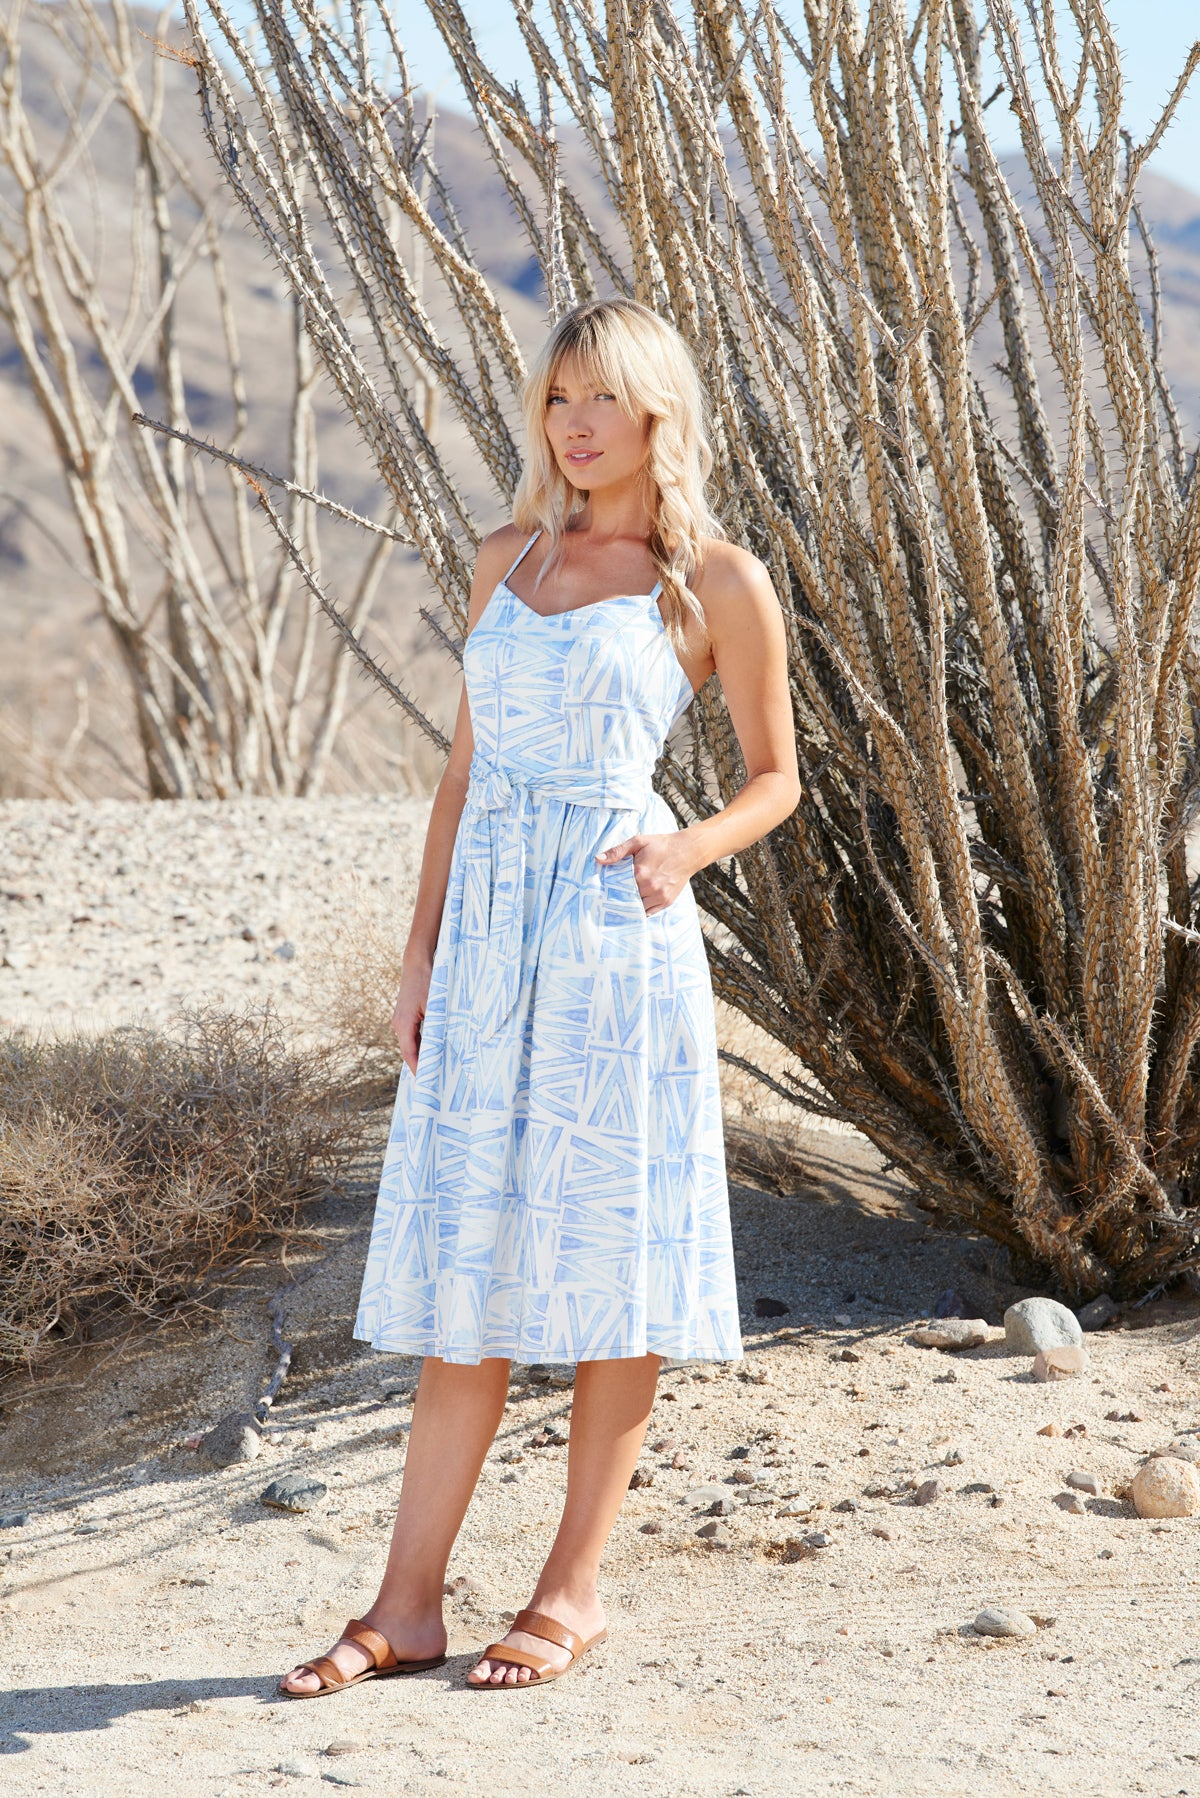 PALM CANYON DRESS - Viva Sky